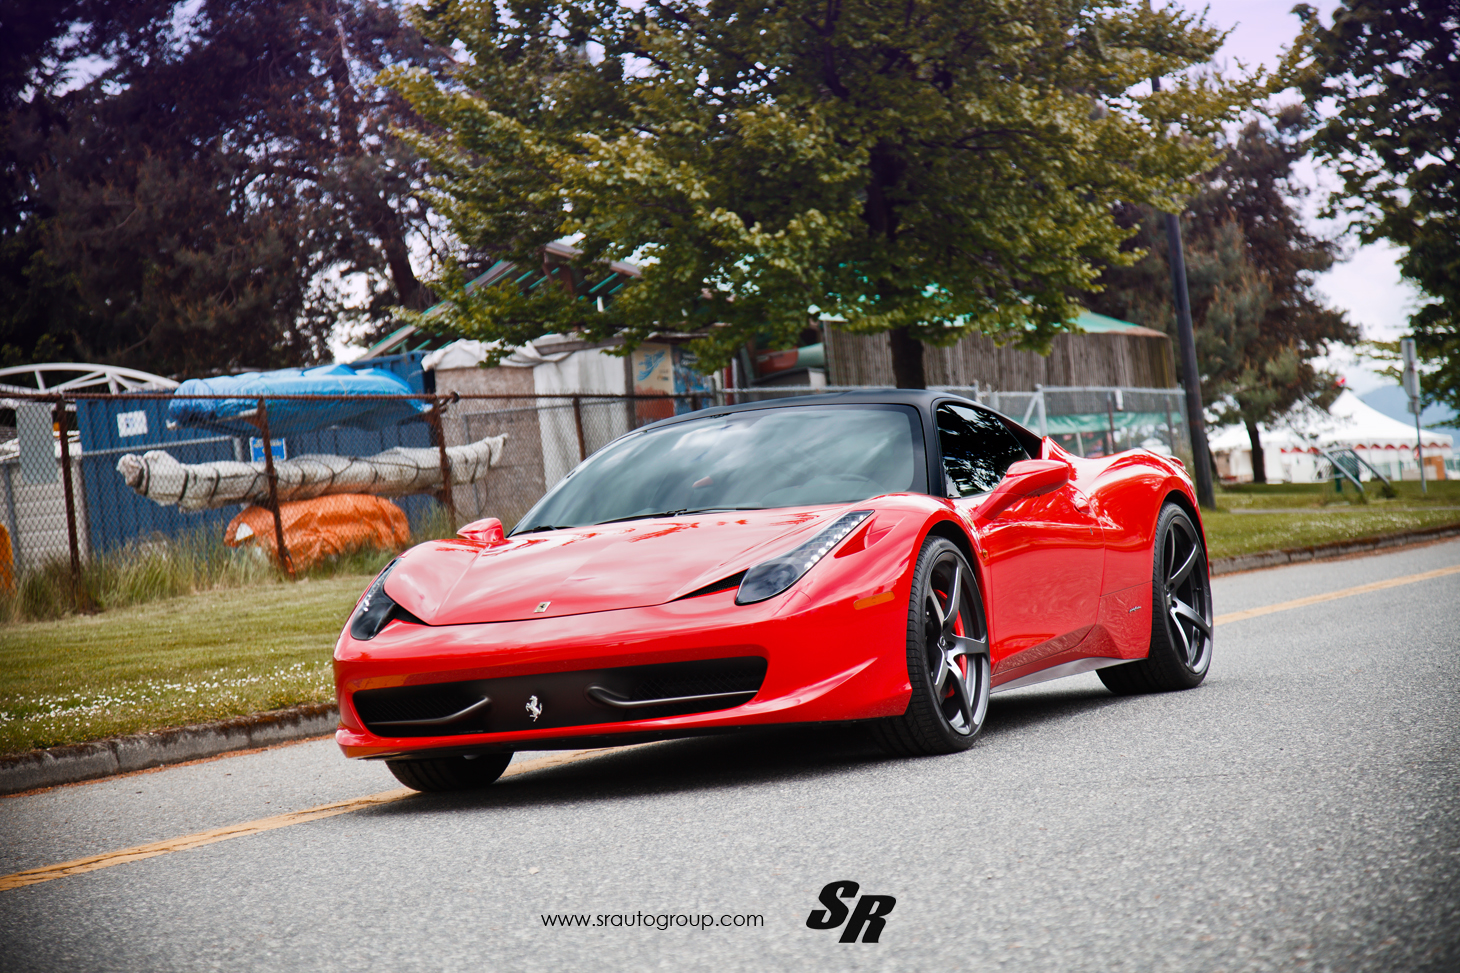 2012-sr-ferrari-458-italia-project-refined-beauty-02.jpg